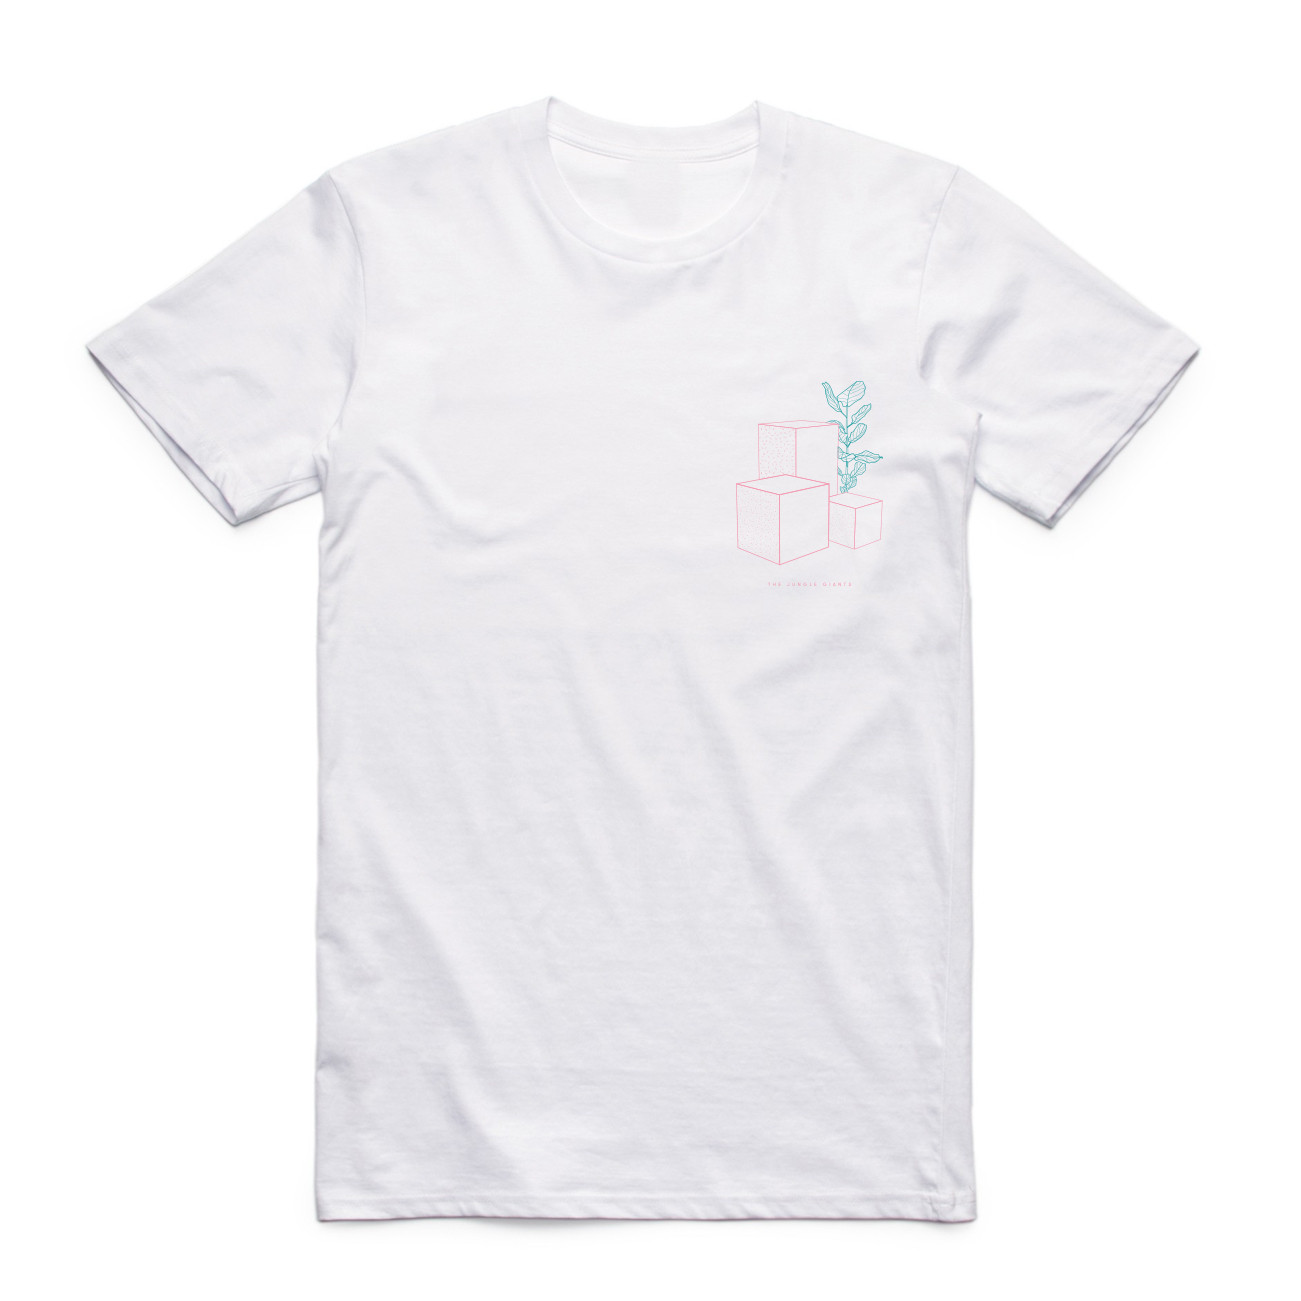 The Jungle Giants - Quiet Ferocity White Tee